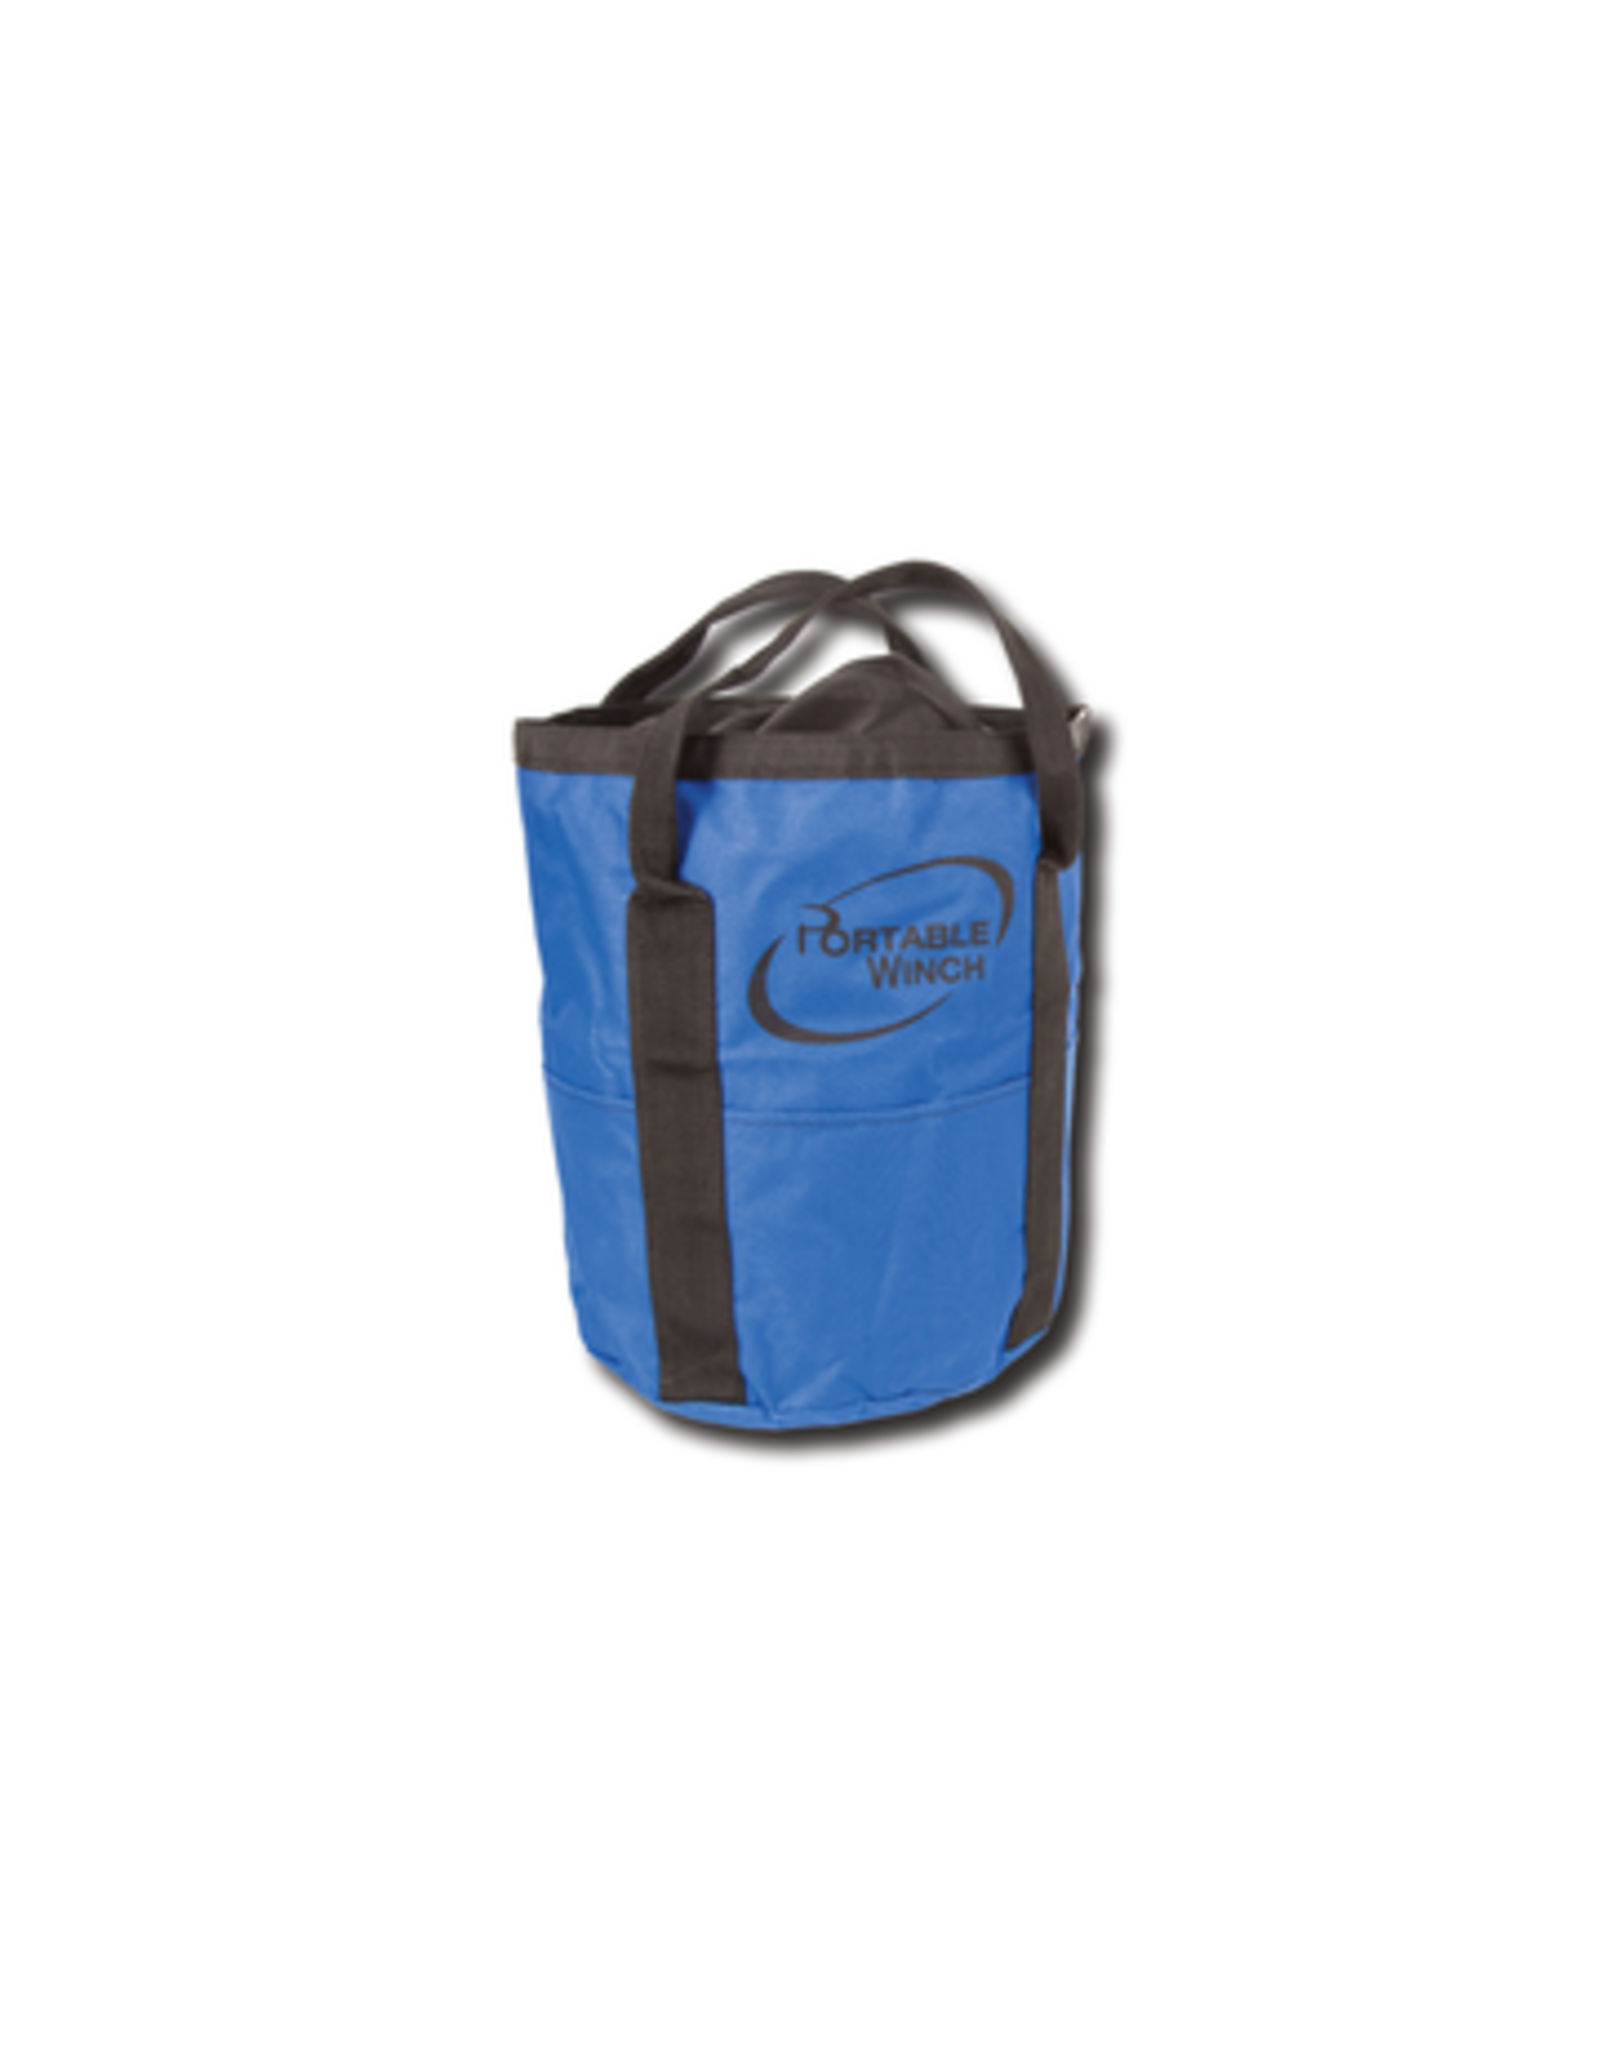 Portable Winch PW ROPE BAG SMALL